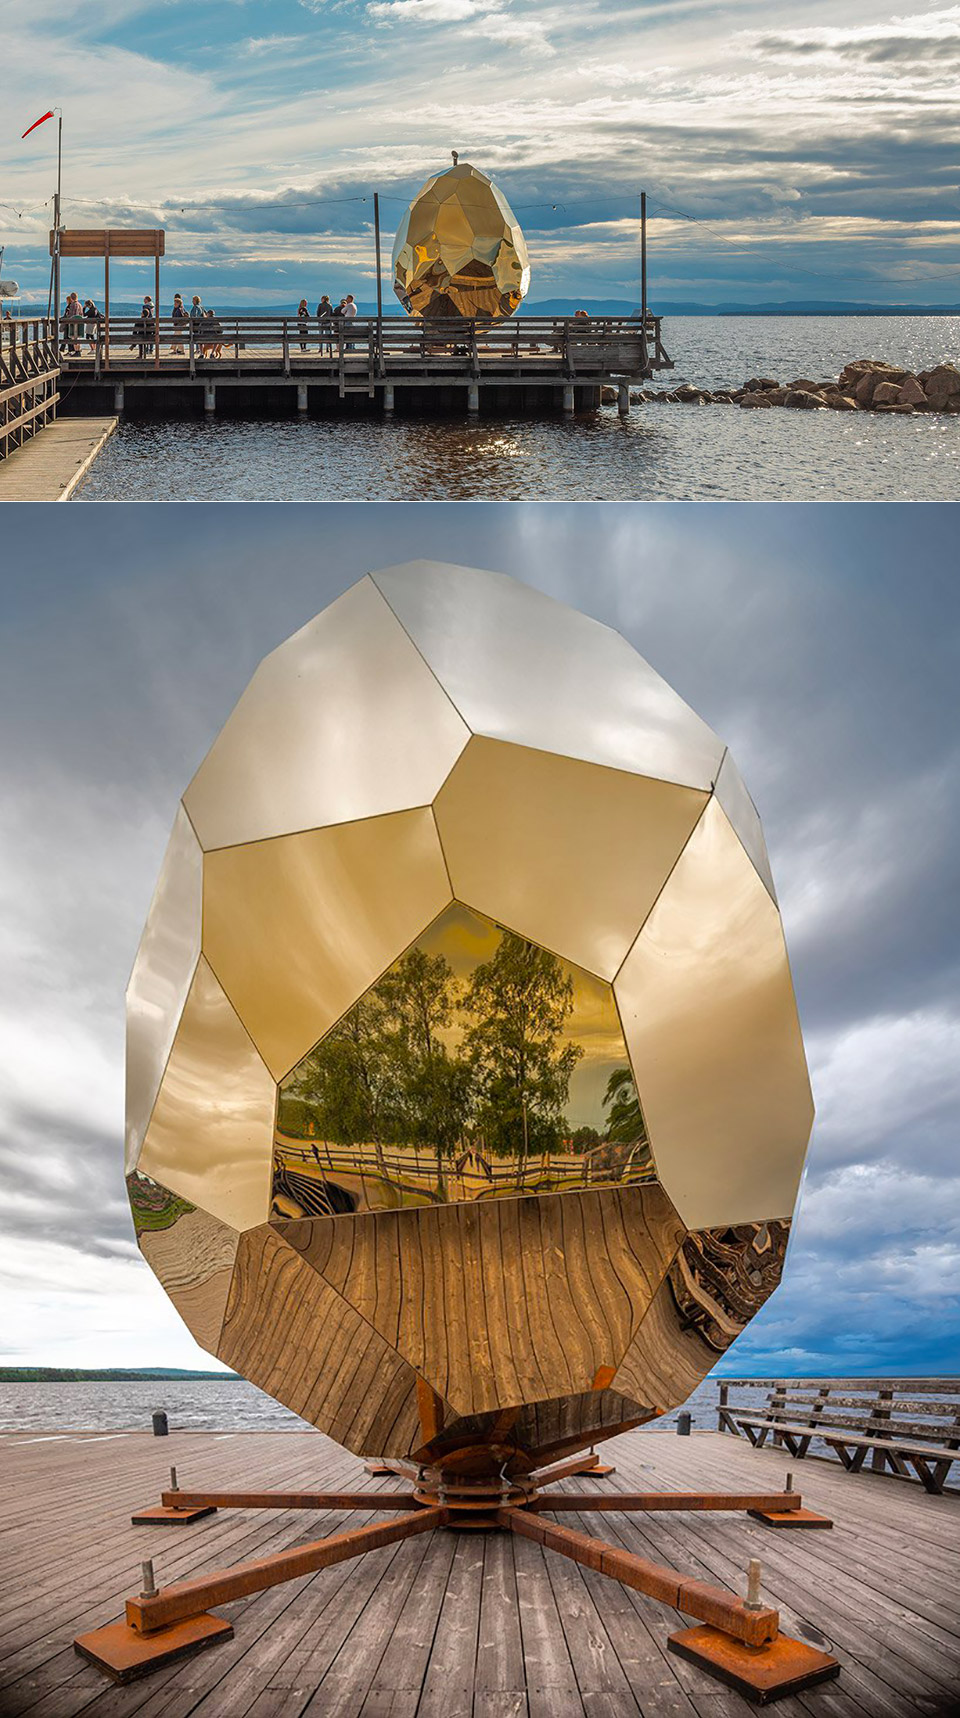 Golden Egg Solar Sauna